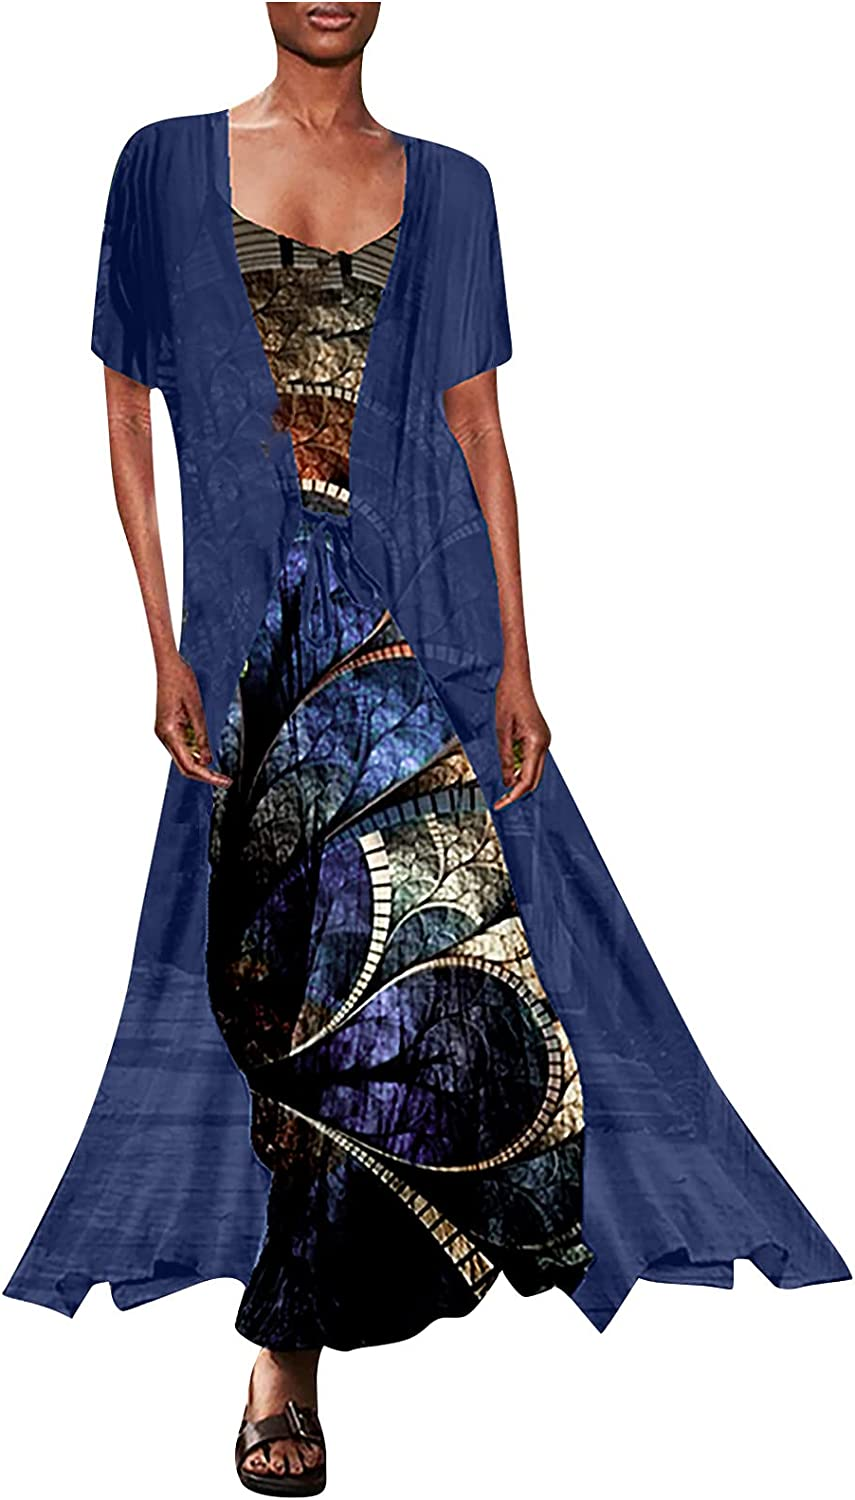 5665 2021 Summer Long Dress for Womens 2 PieceMaxi Flower Print V-Neck Beach Loose Dress Party Fashion Camisole Gown